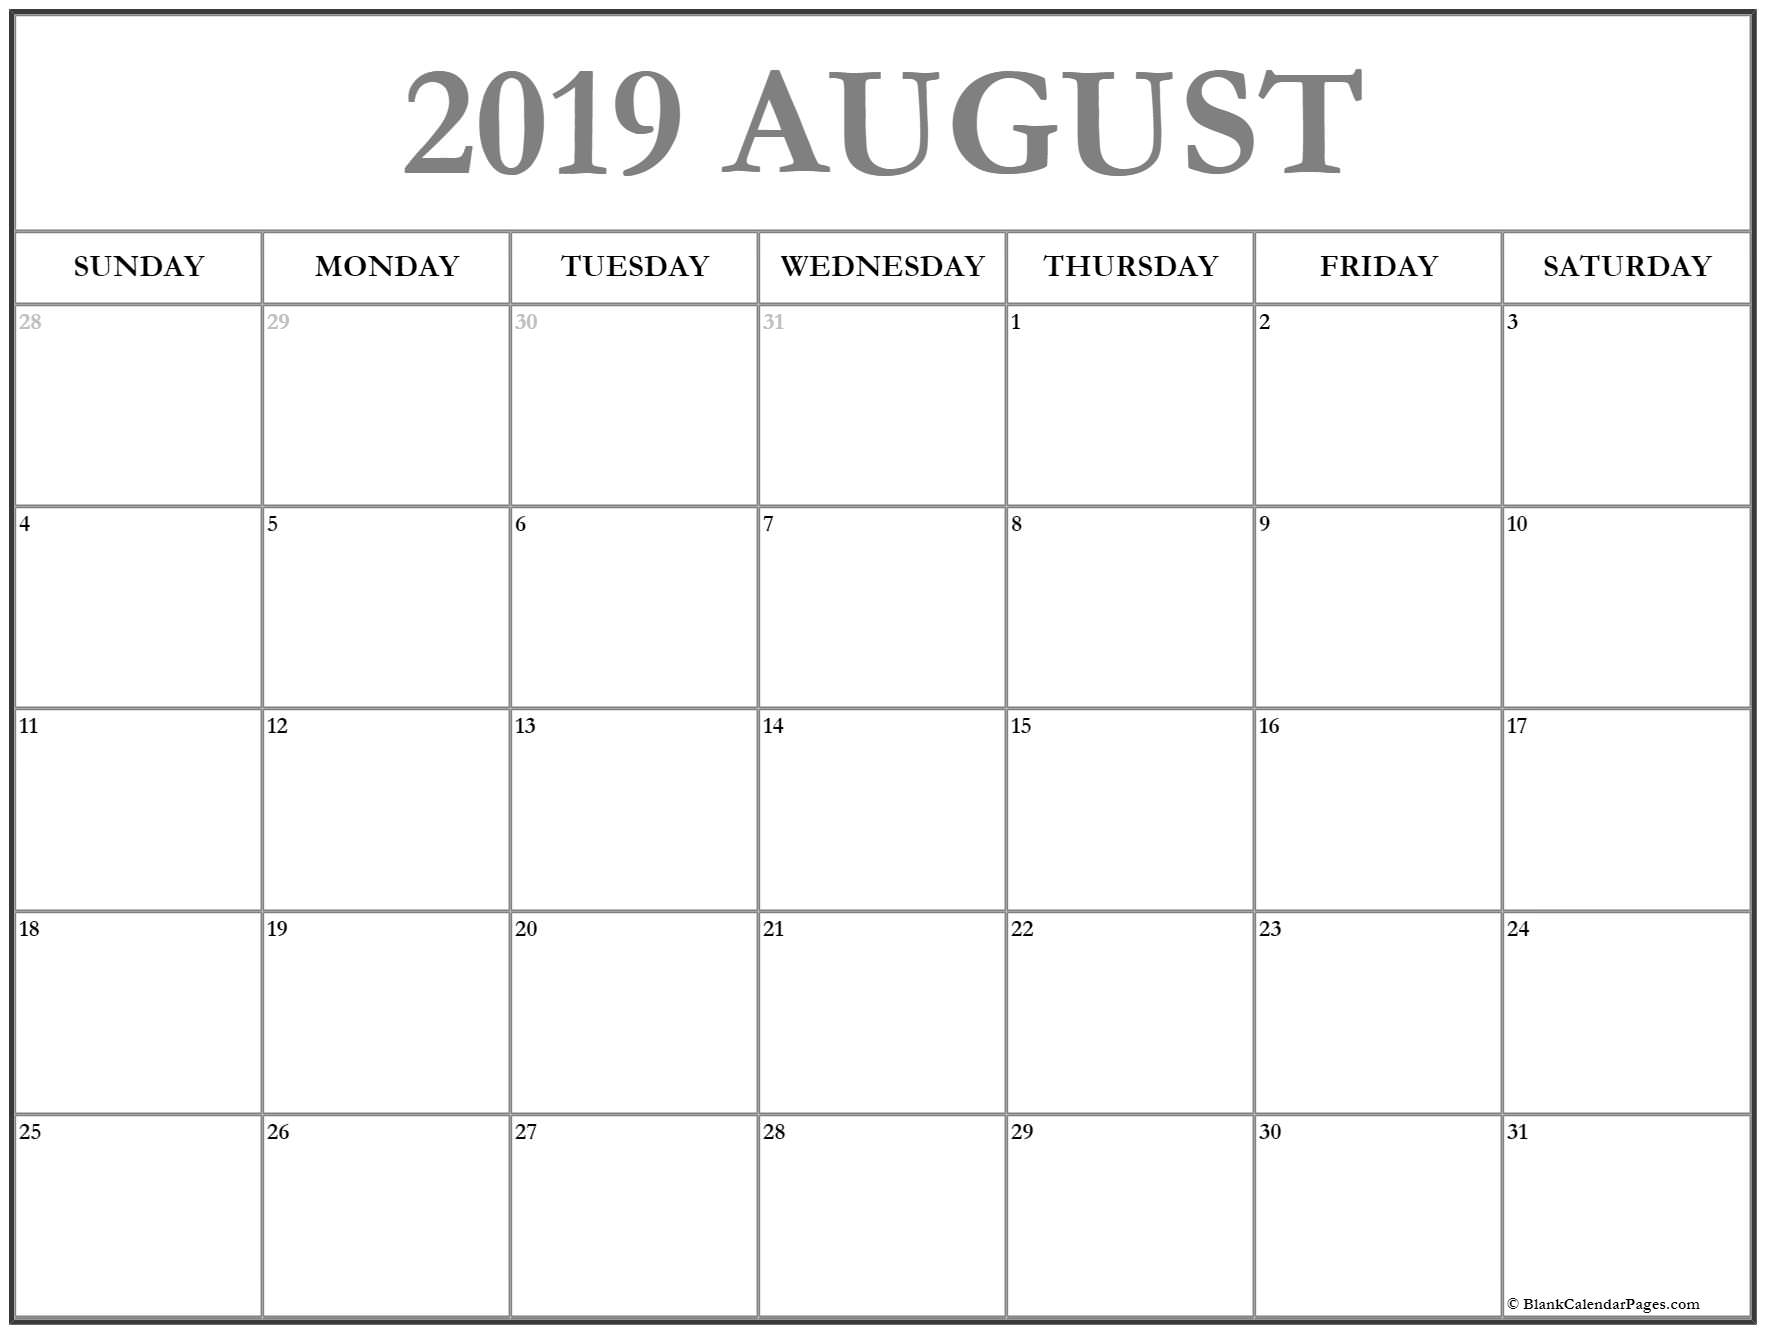 August 2019 Calendar | Free Printable Monthly Calendars within Blank Calender Of August